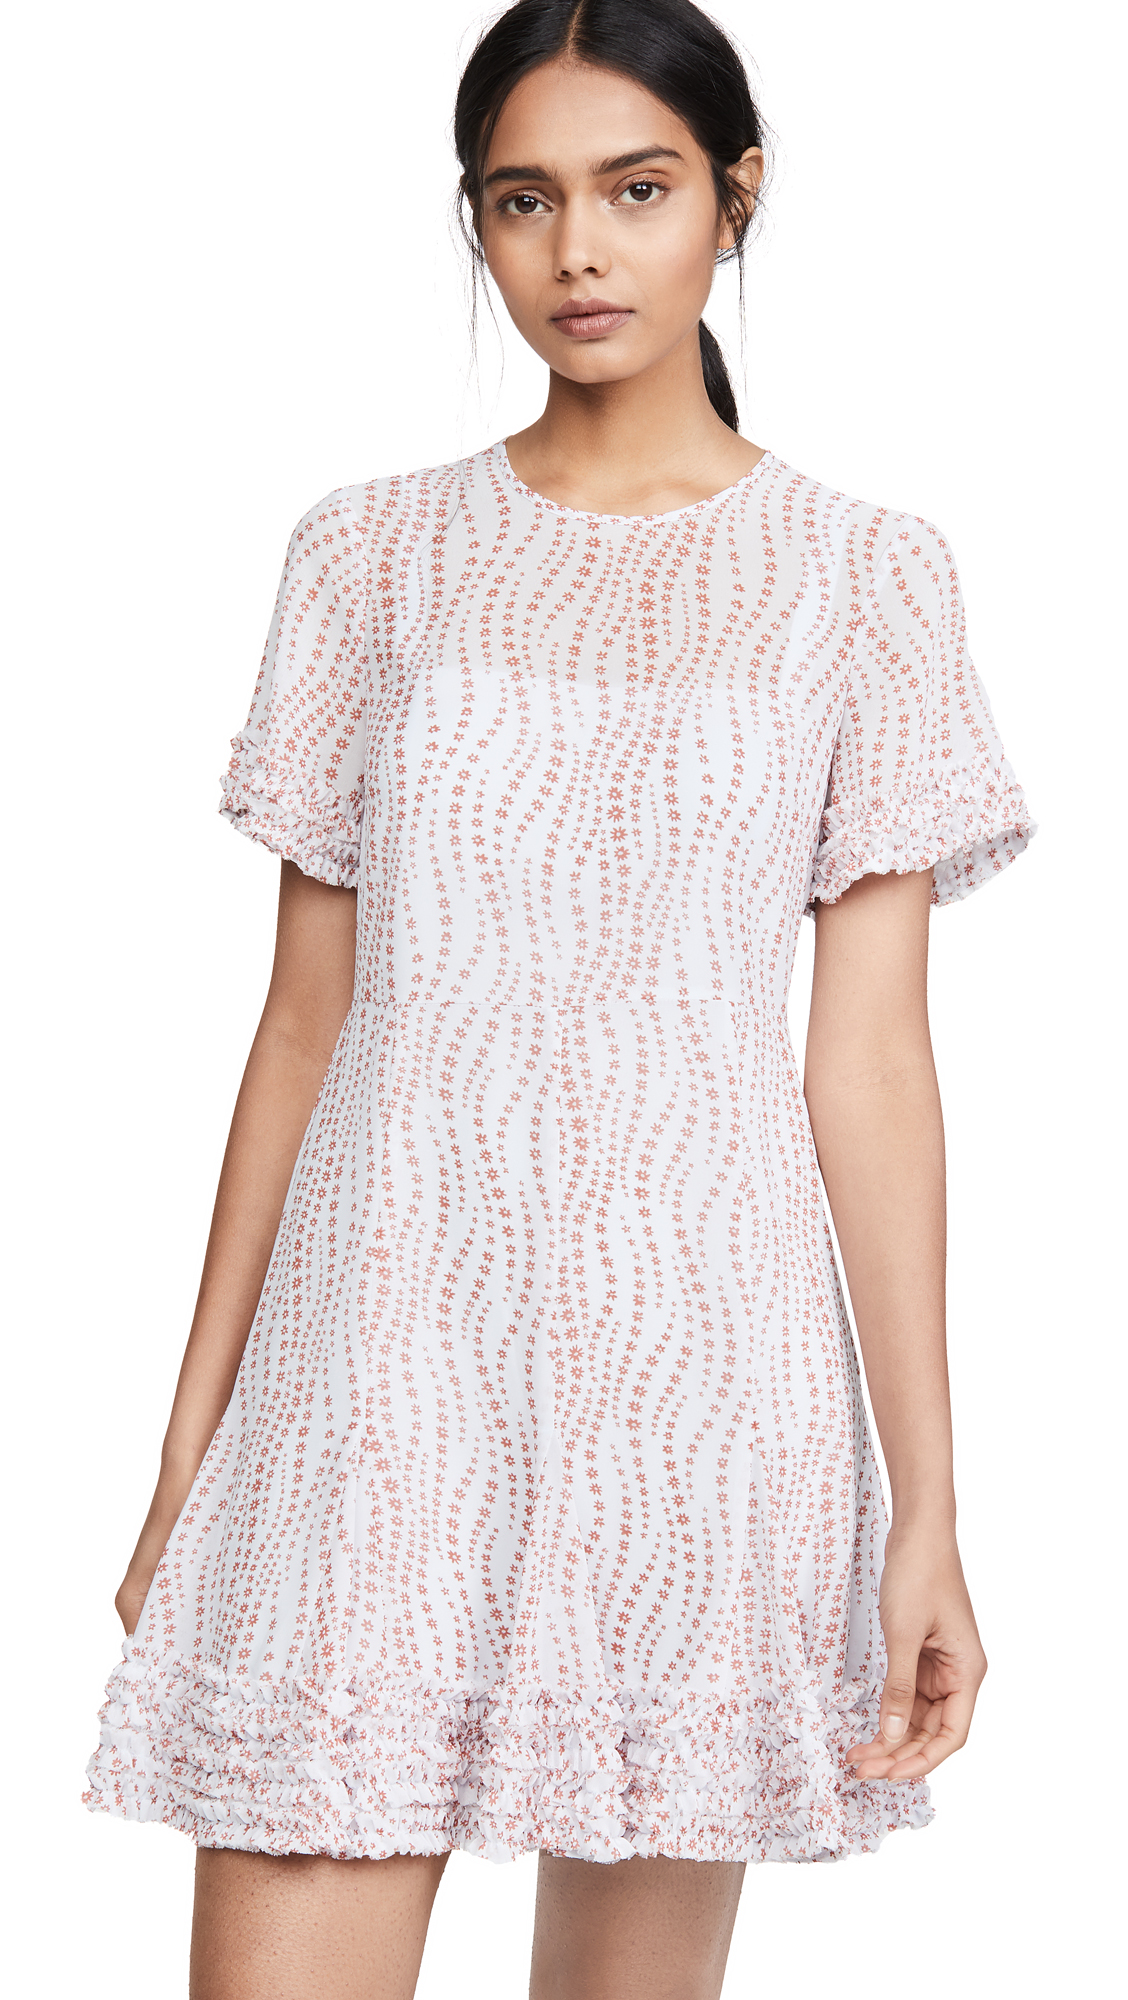 Cinq a Sept Soft Ashton Dress - 50% Off Sale